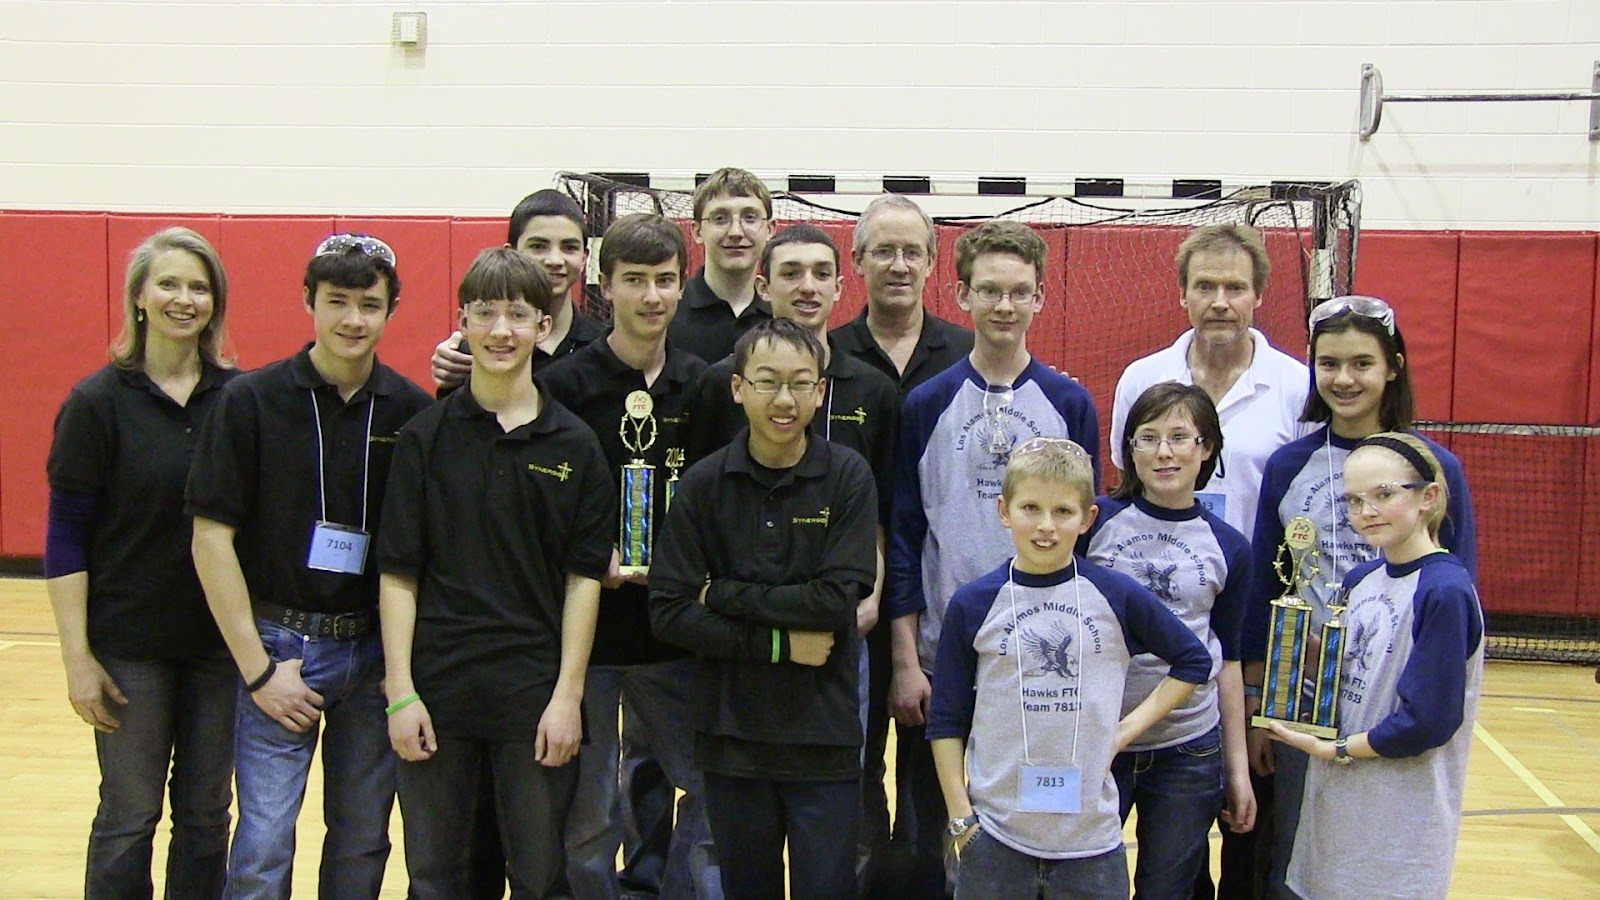 Colorado Springs FTC Qualifiers – Our Rookie Team Takes First Place!